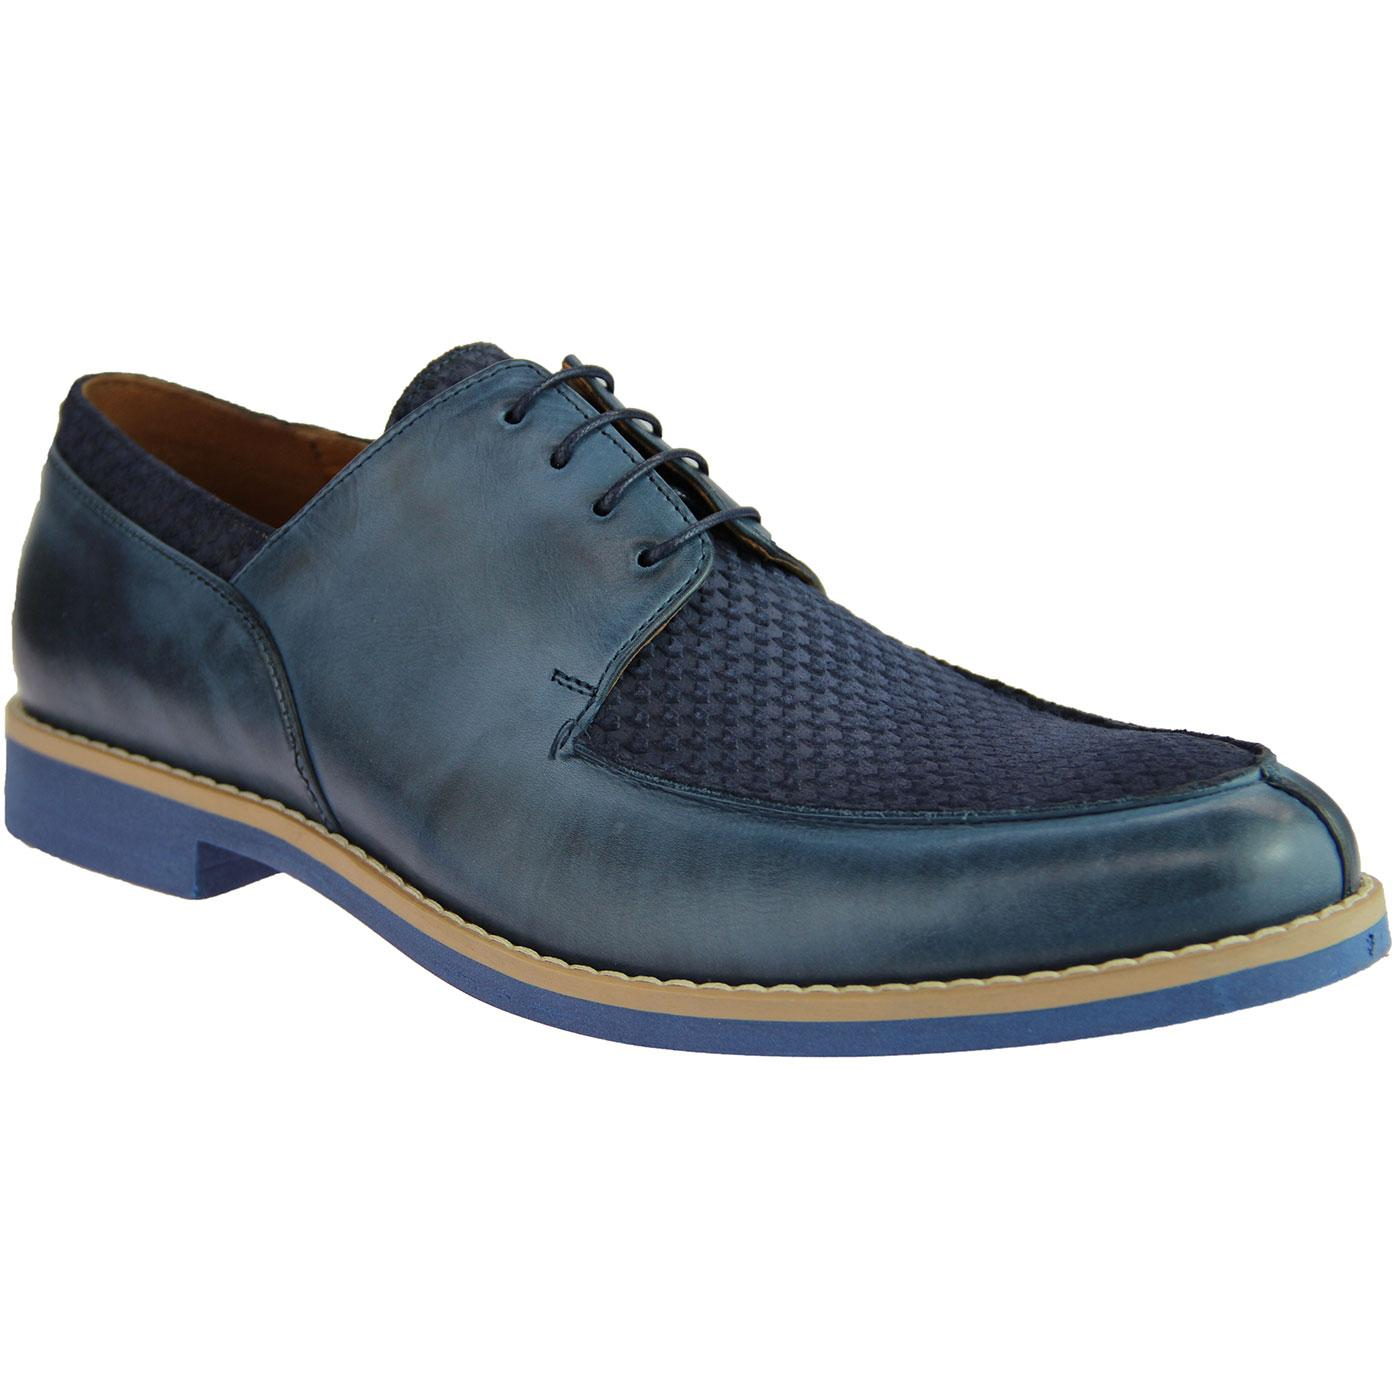 LACUZZO Retro Mod Dogtooth Stamp Suede Shoes